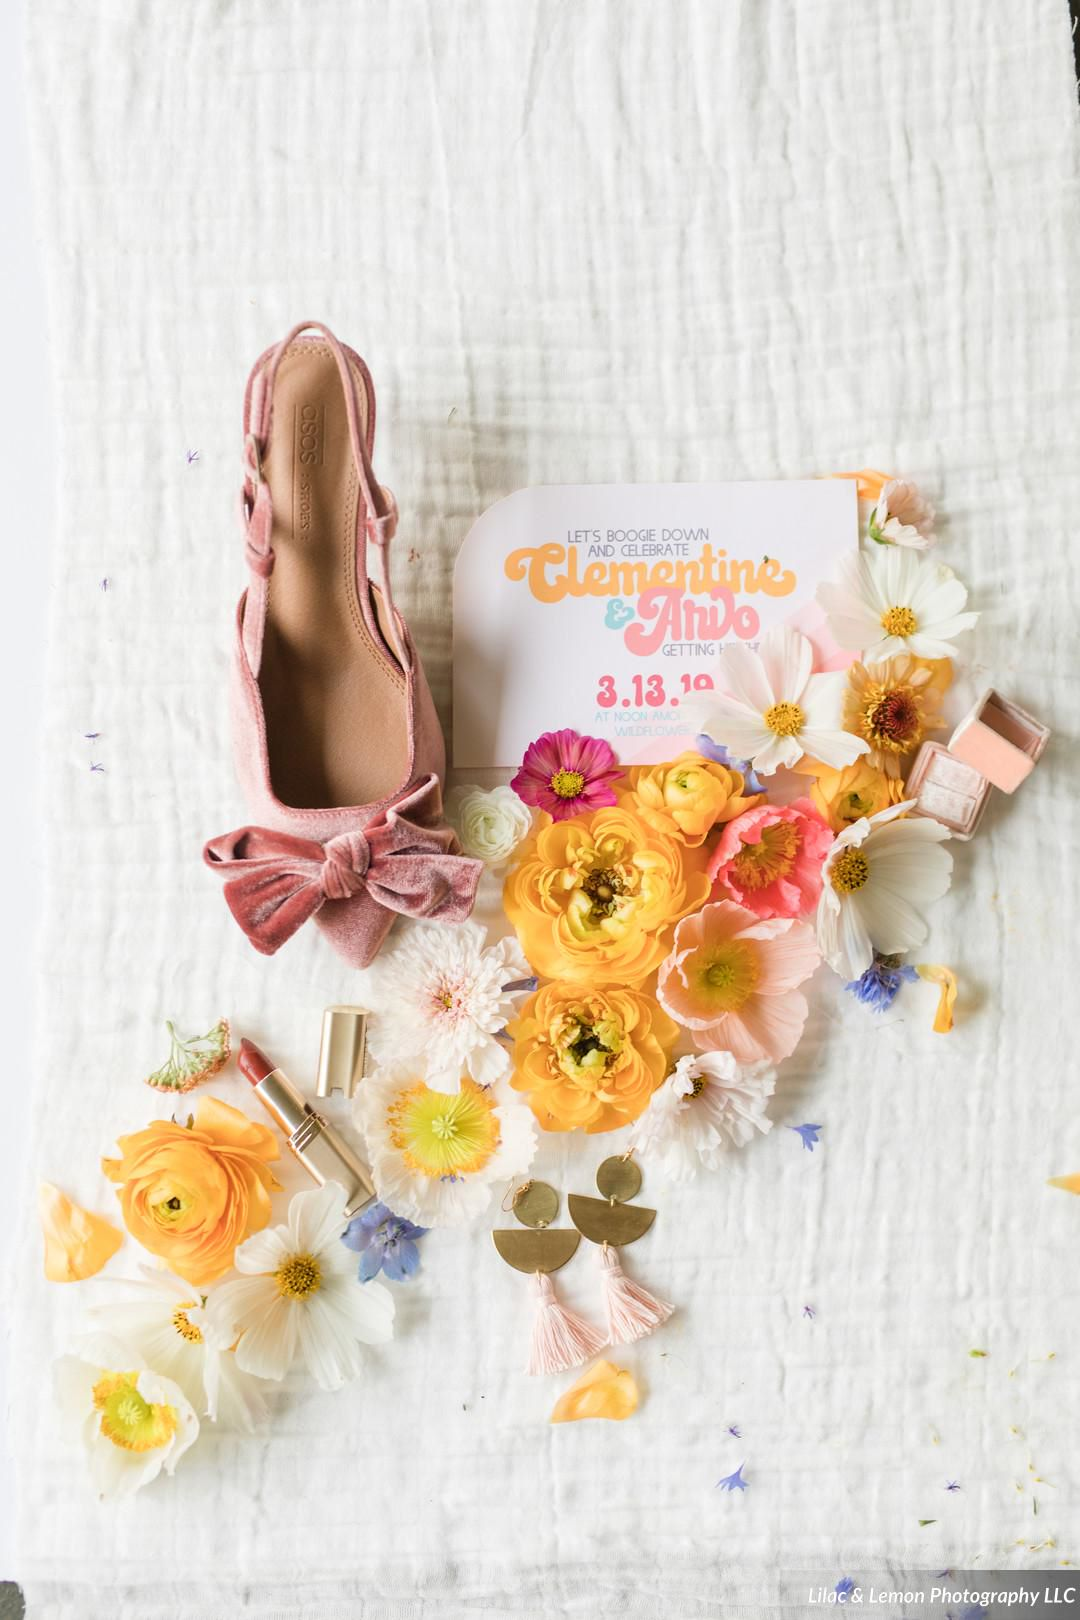 Custom 70's Inspired Wedding Invitation Suite | Colorful Geometric Envelope liner, Papaya Orange Envelopes and a double thick RSVP card surrounded by Wildflowers | Flowers by Field + Forage, Stationery by Beauty Bright Design